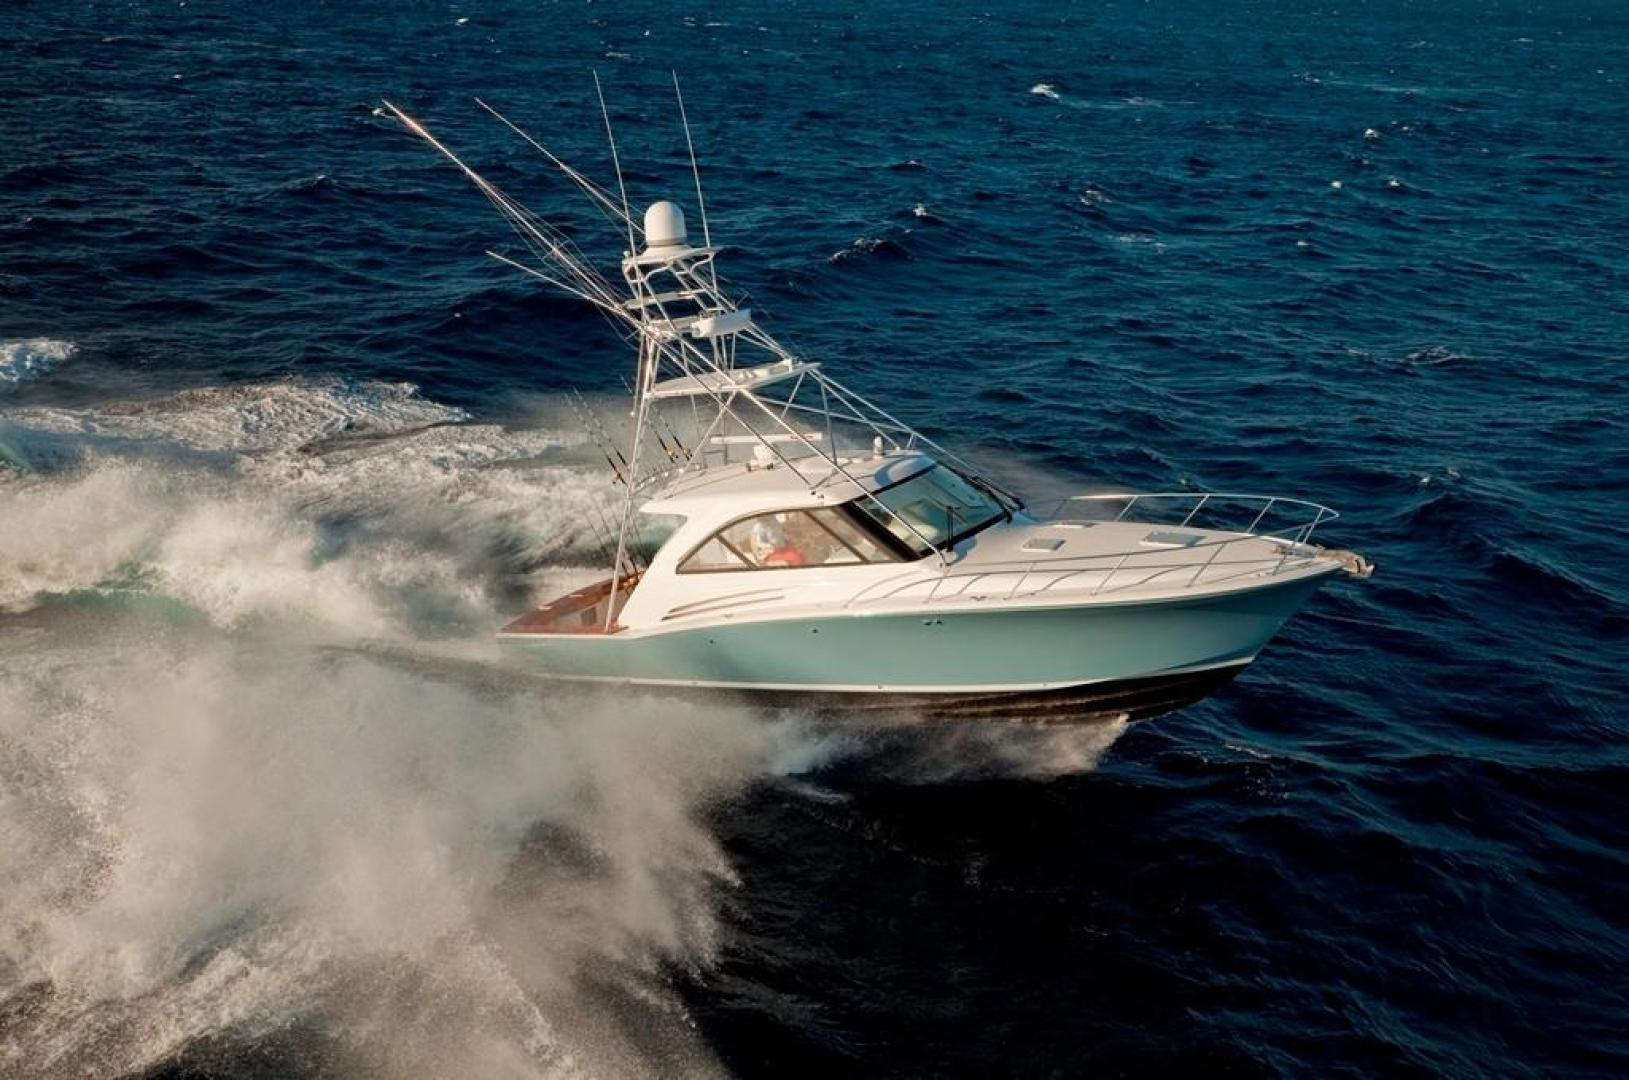 Hatteras 45EX running in rough ocean water